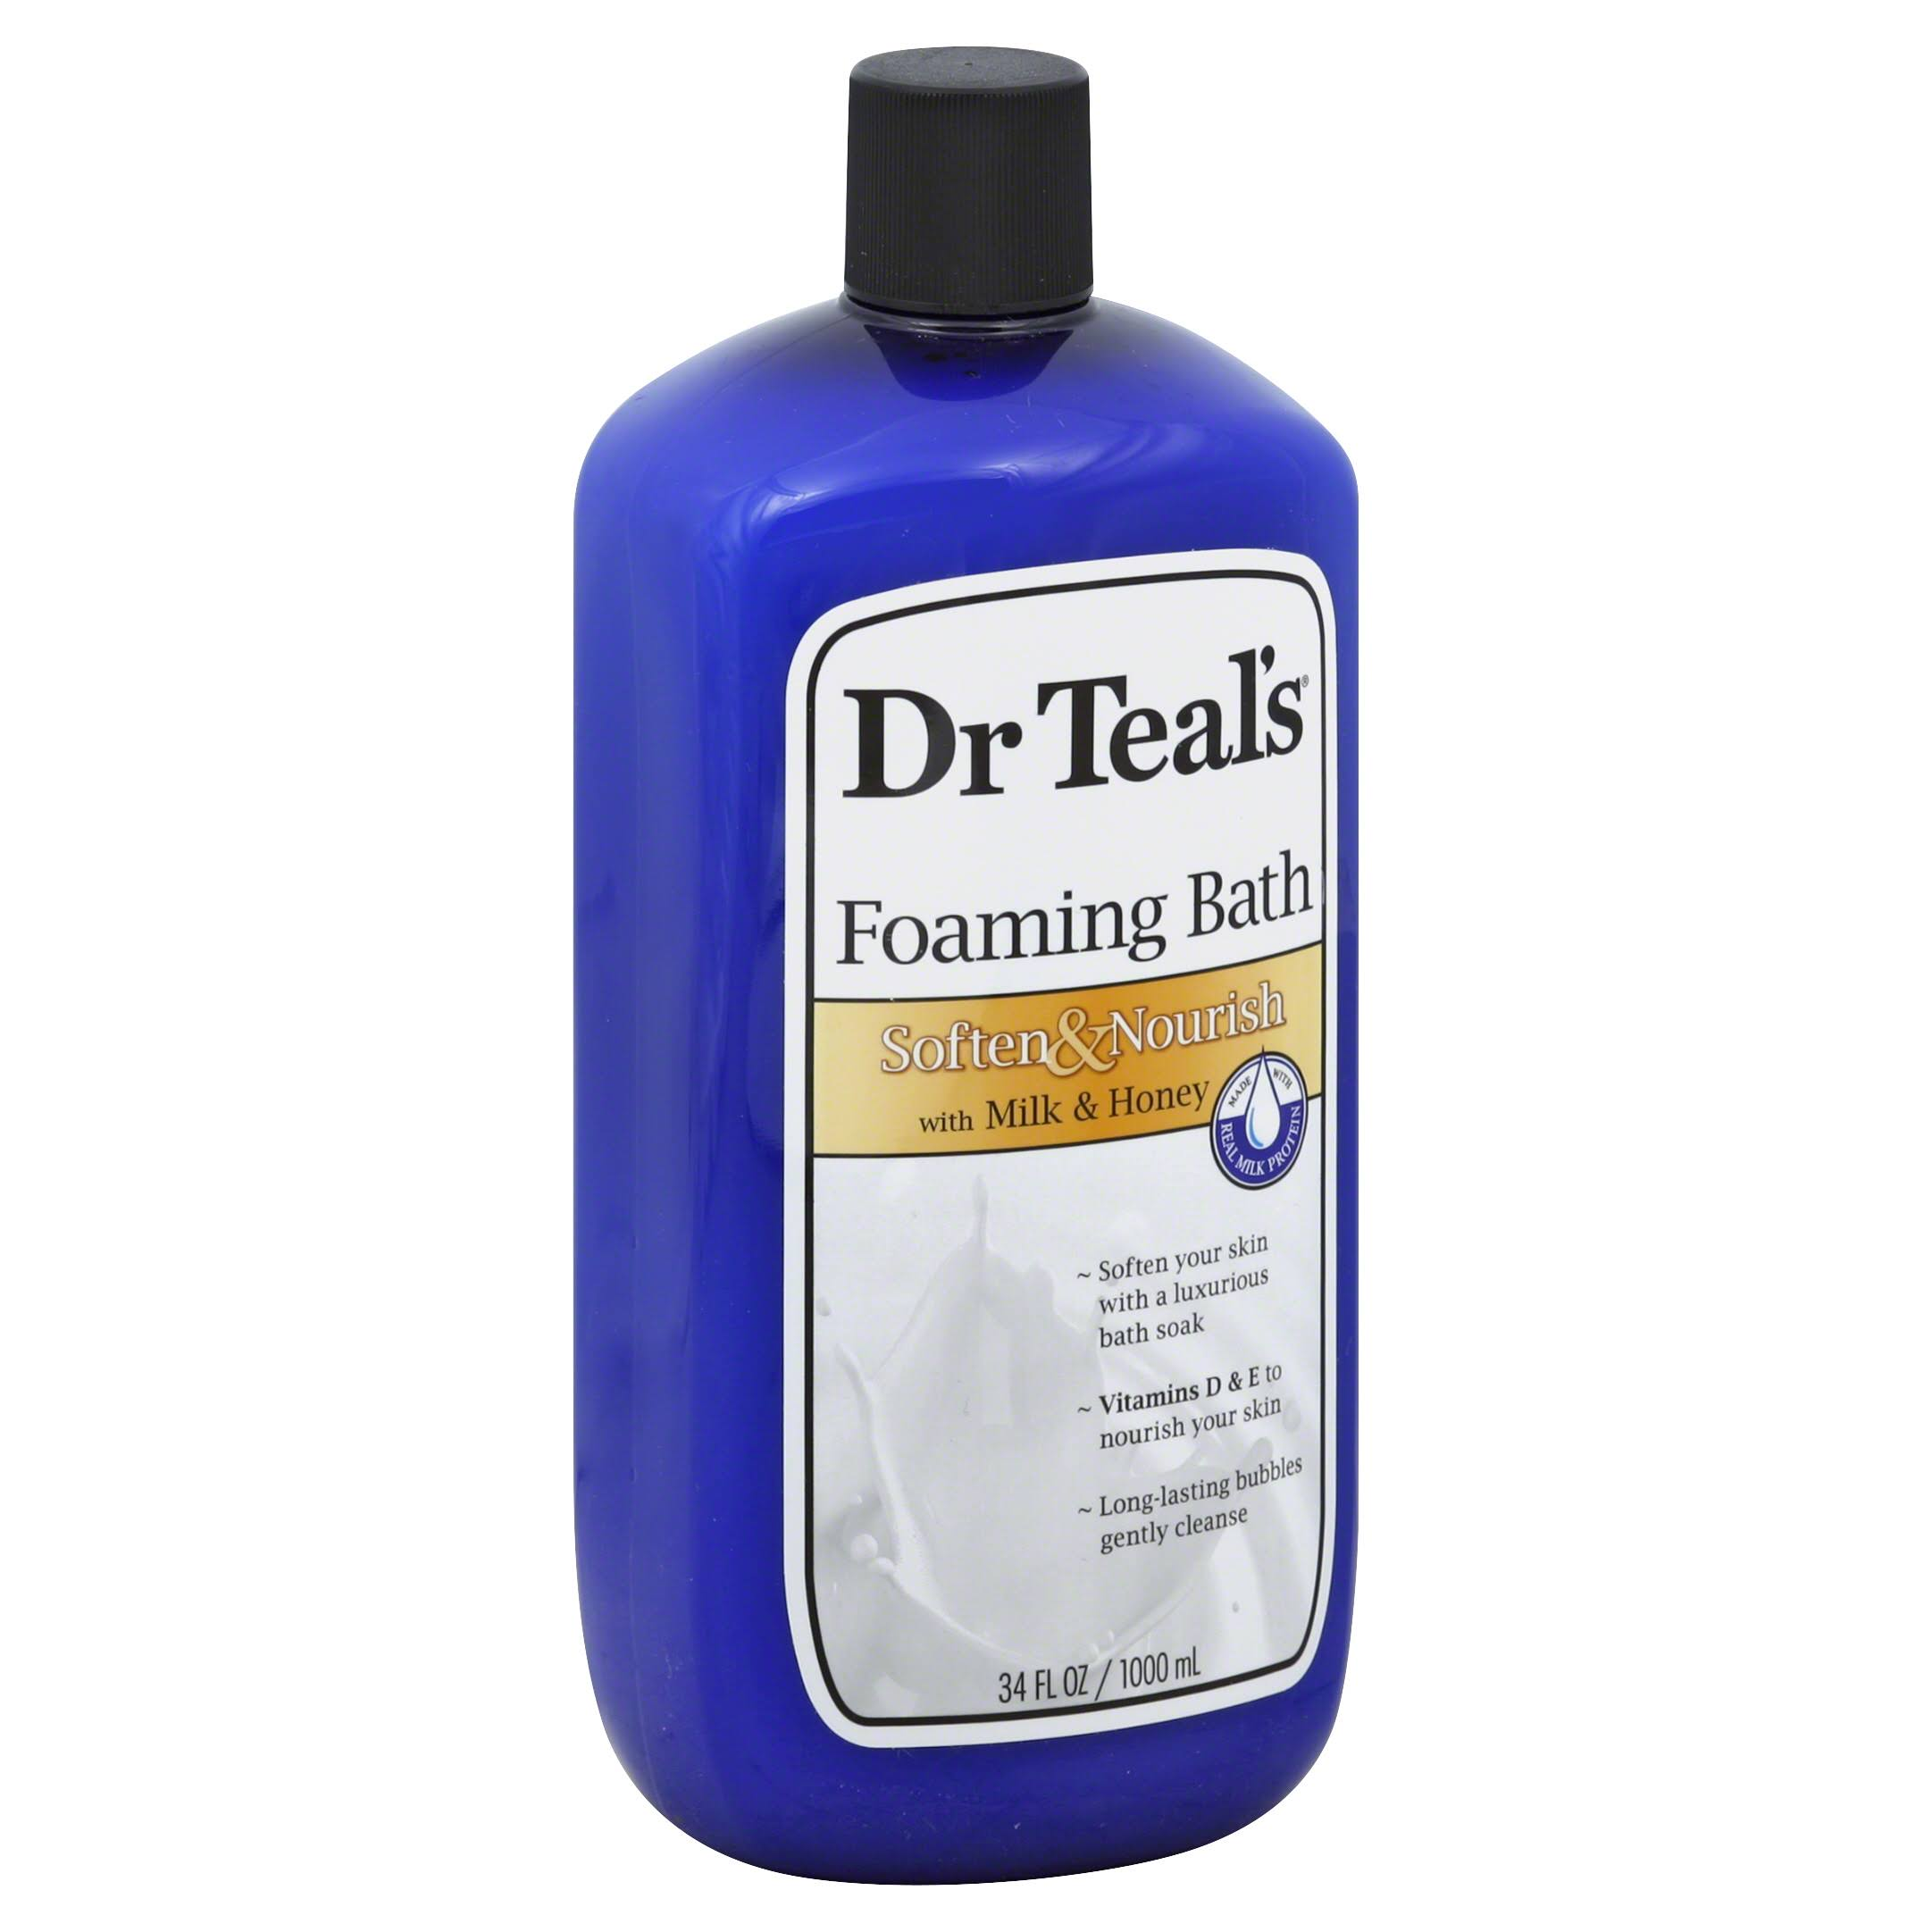 Dr Teal's Foaming Bath - Milk & Honey, 1000ml